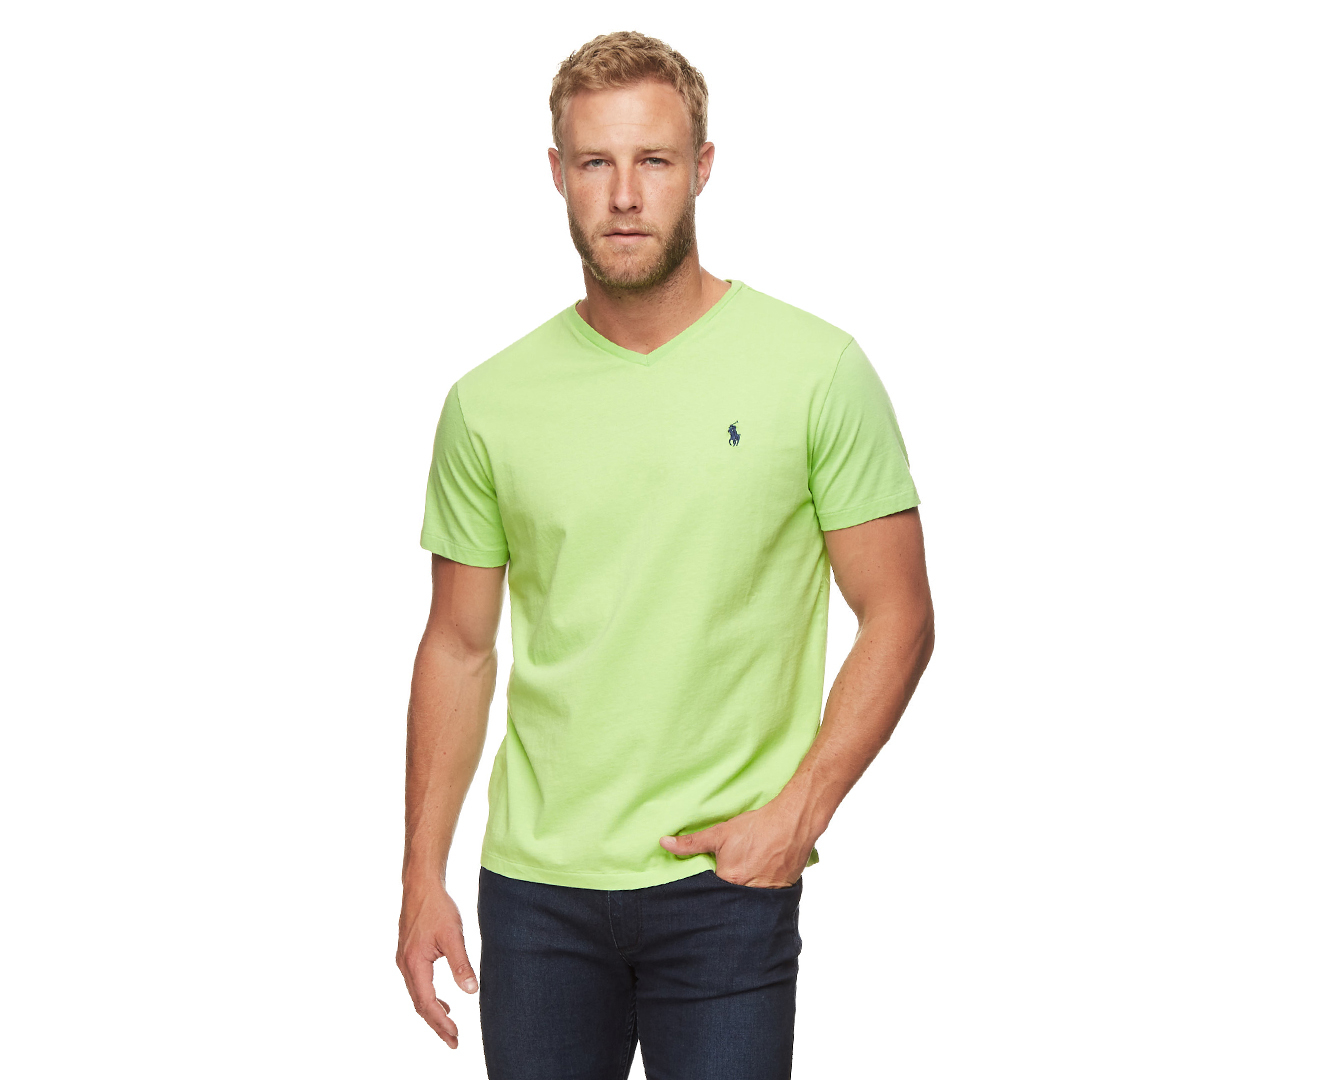 ef37e1ffc6 Details about Polo Ralph Lauren Men's V-Neck T-Shirt - Green